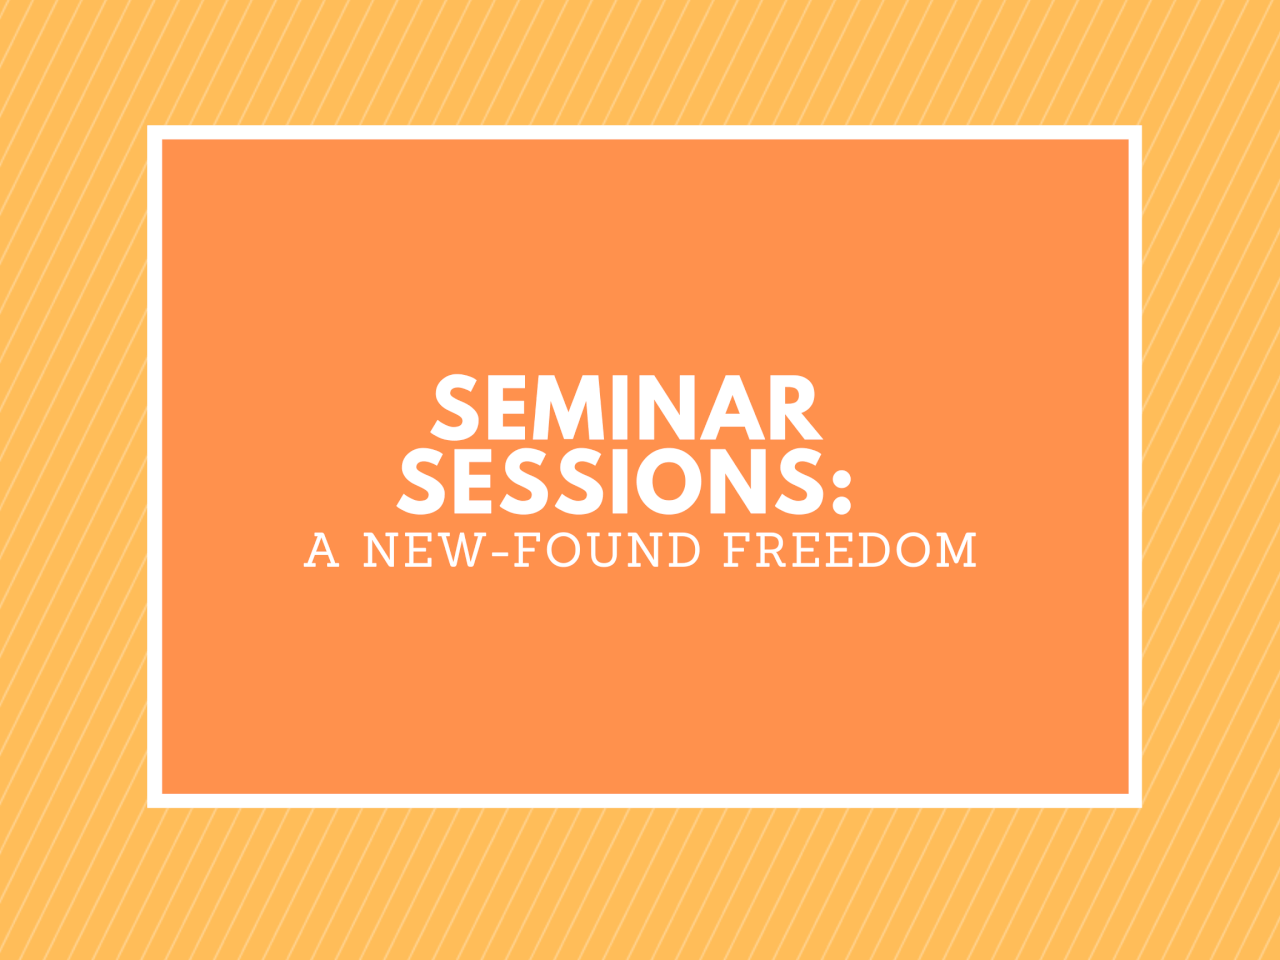 SEMINAR SESSIONS: A NEW-FOUND FREEDOM